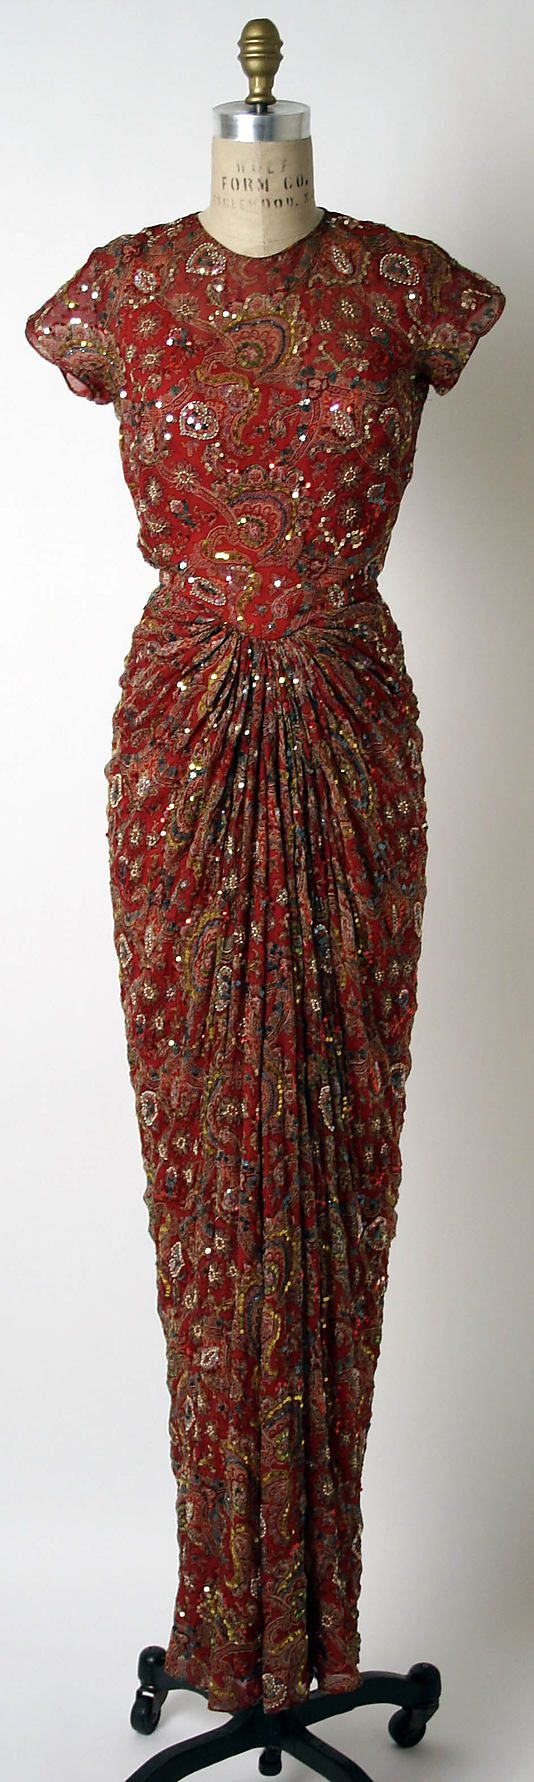 Another evening dress by James Galanos 1957-1958. Indian inspired embroidery all over the printed silk.